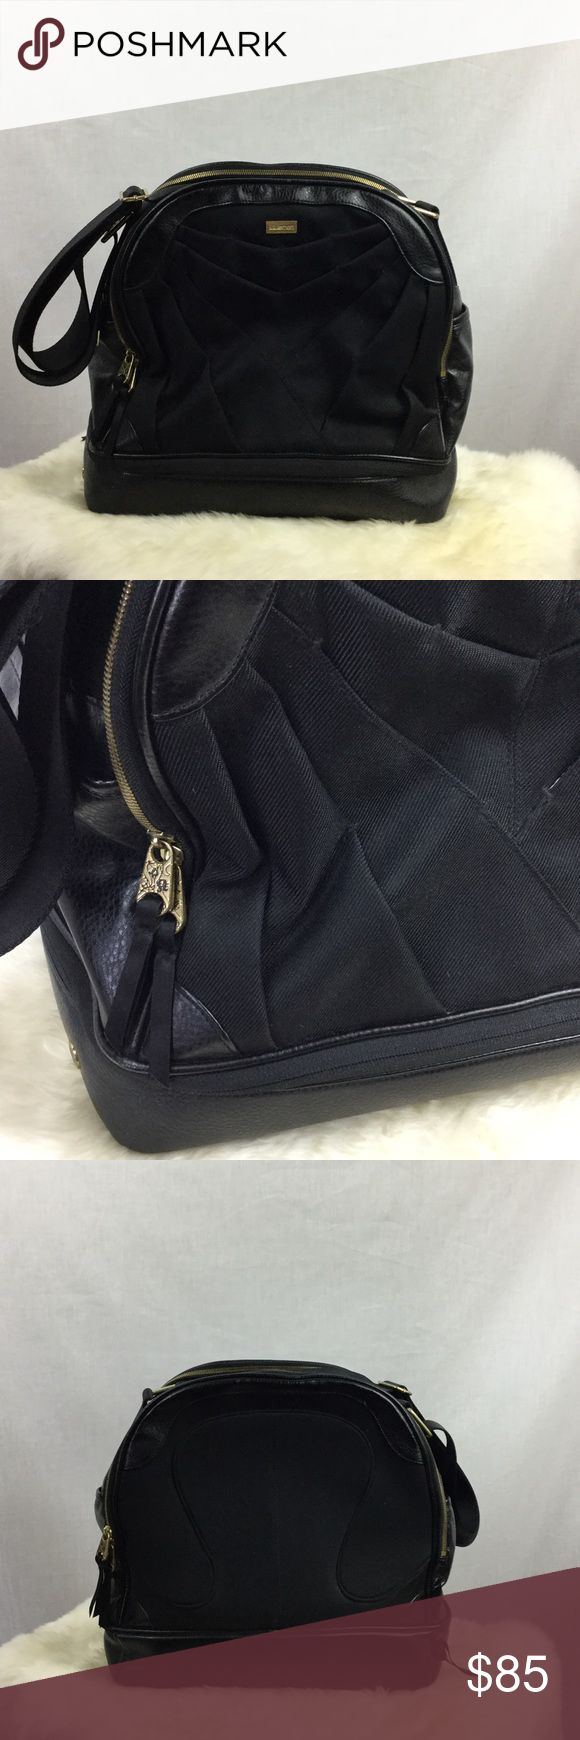 """Lululemon Activa Bowling Bag Bottom unzips for shoe storage.  Some dust from storing.  One small nick and tiny wear on trim as seen in photos. Makeup area inside has pen stain. Tons of storage!  Some scuffs on bottom and scratches on gold hardware. Inside is very clean.  Adjustable thick 2"""" strap. Approx 14"""" wide, 14"""" high, and 8"""" deep. lululemon athletica Bags"""